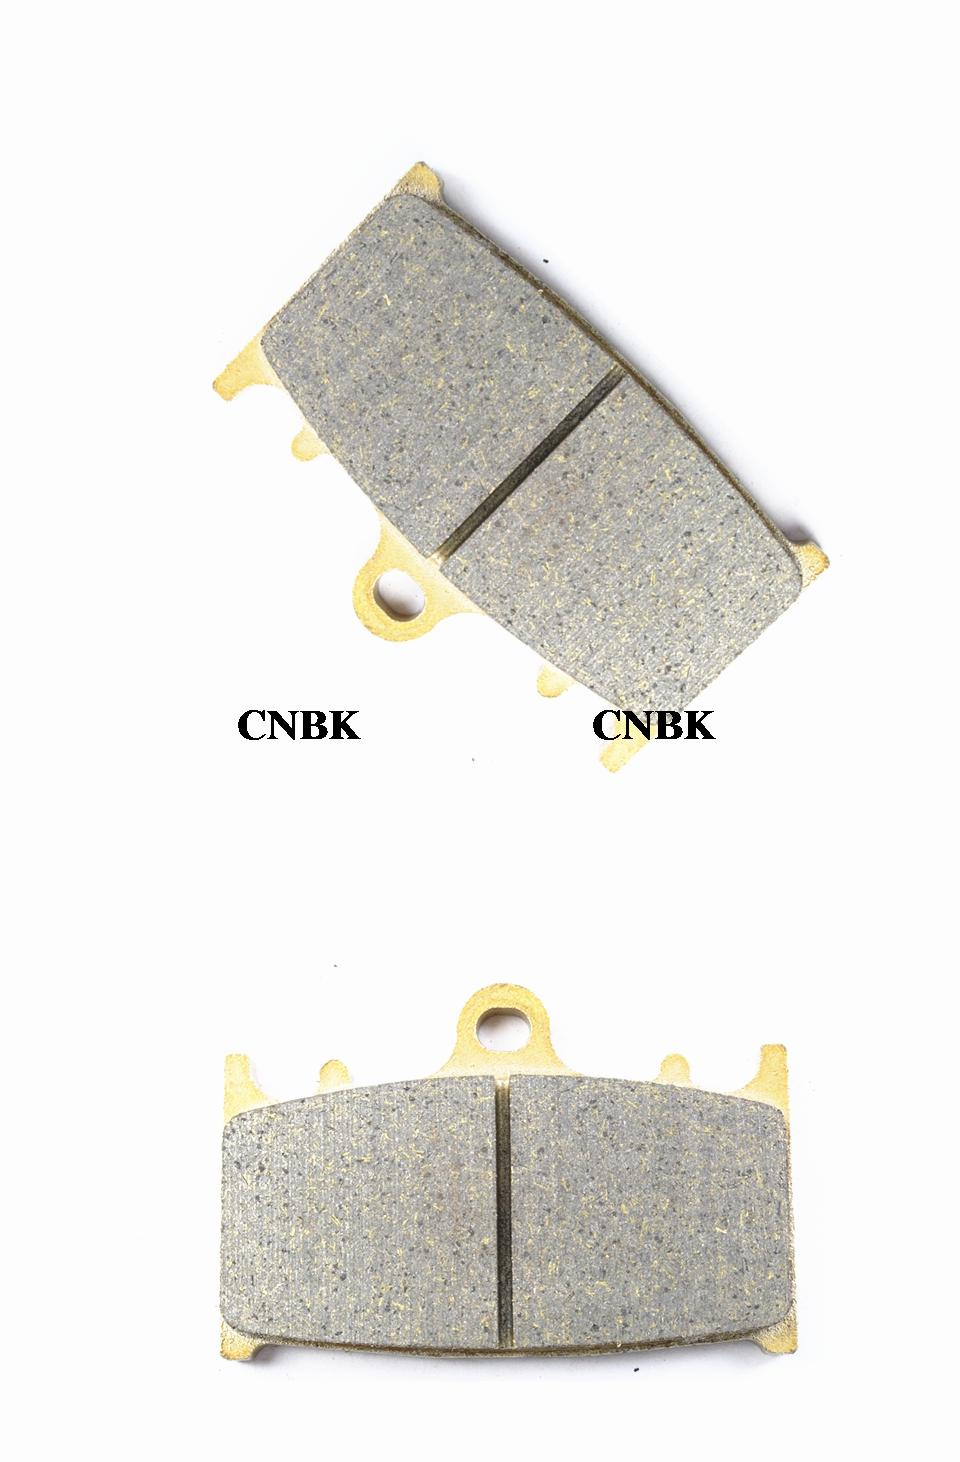 2008 2009 Resin Front Left & Right Disc Brake Pads fit SUZUKI 1250 GSF AK4 / ASK7 Bandit GSF1250 2007 - 2010 CNBK(China (Mainland))